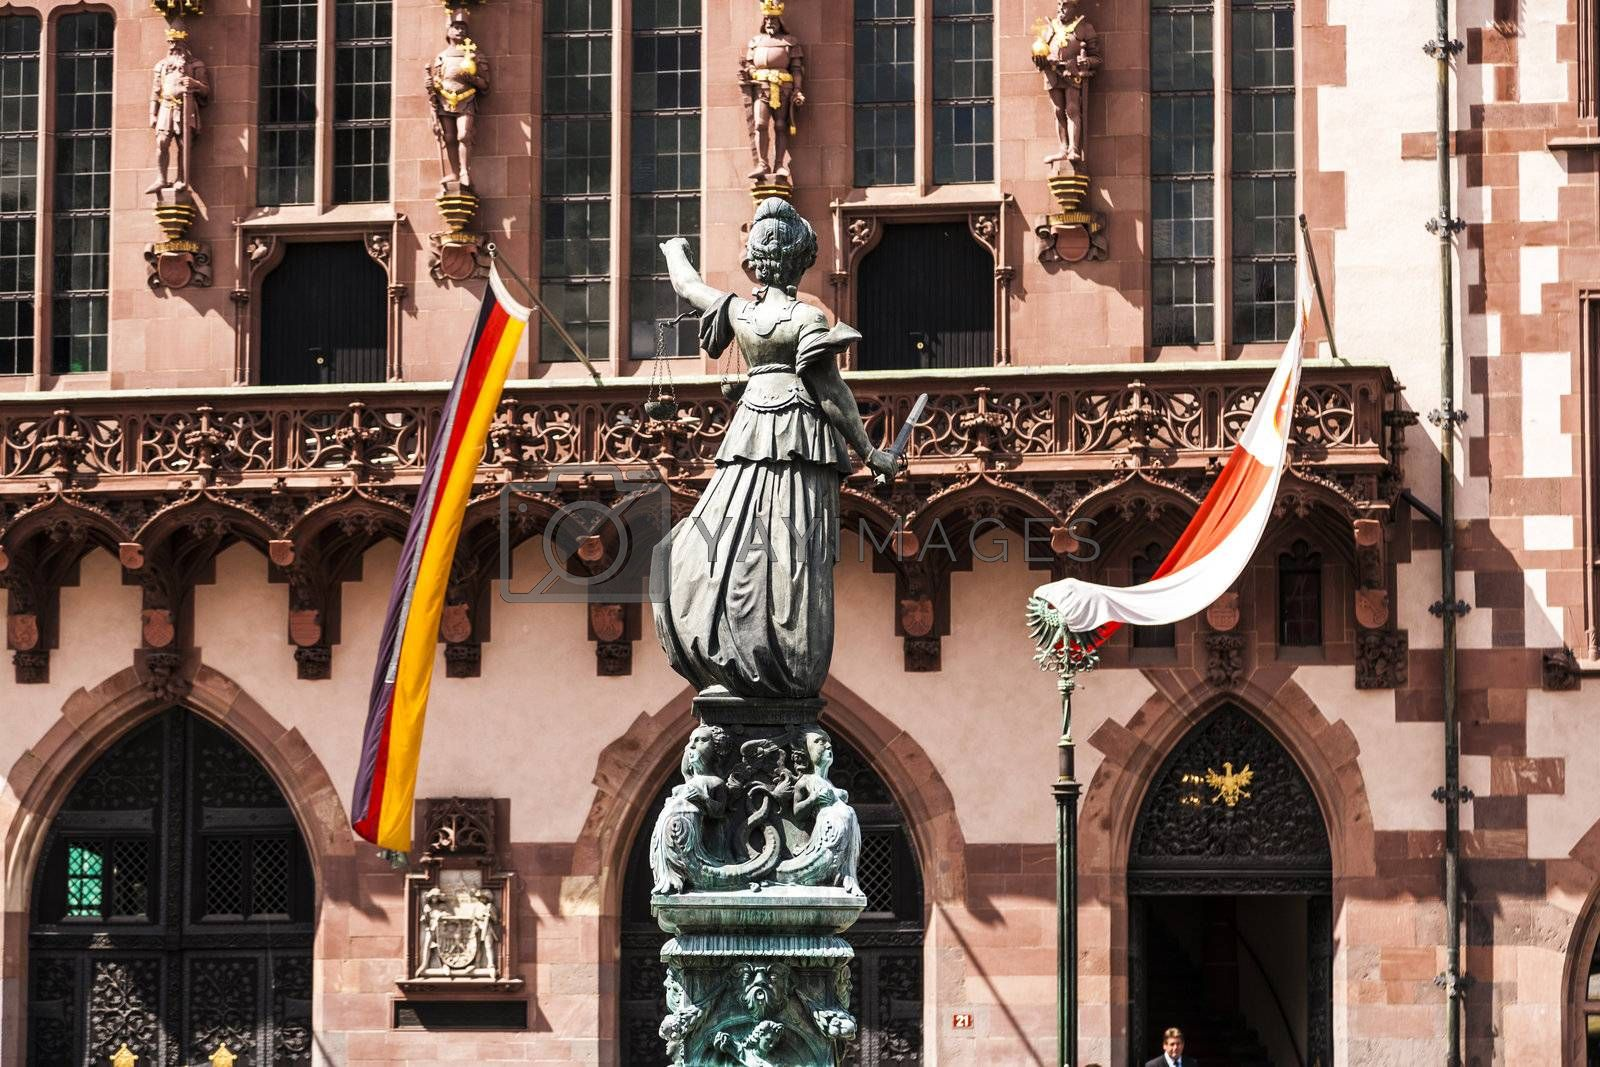 justitia in front of the town hall